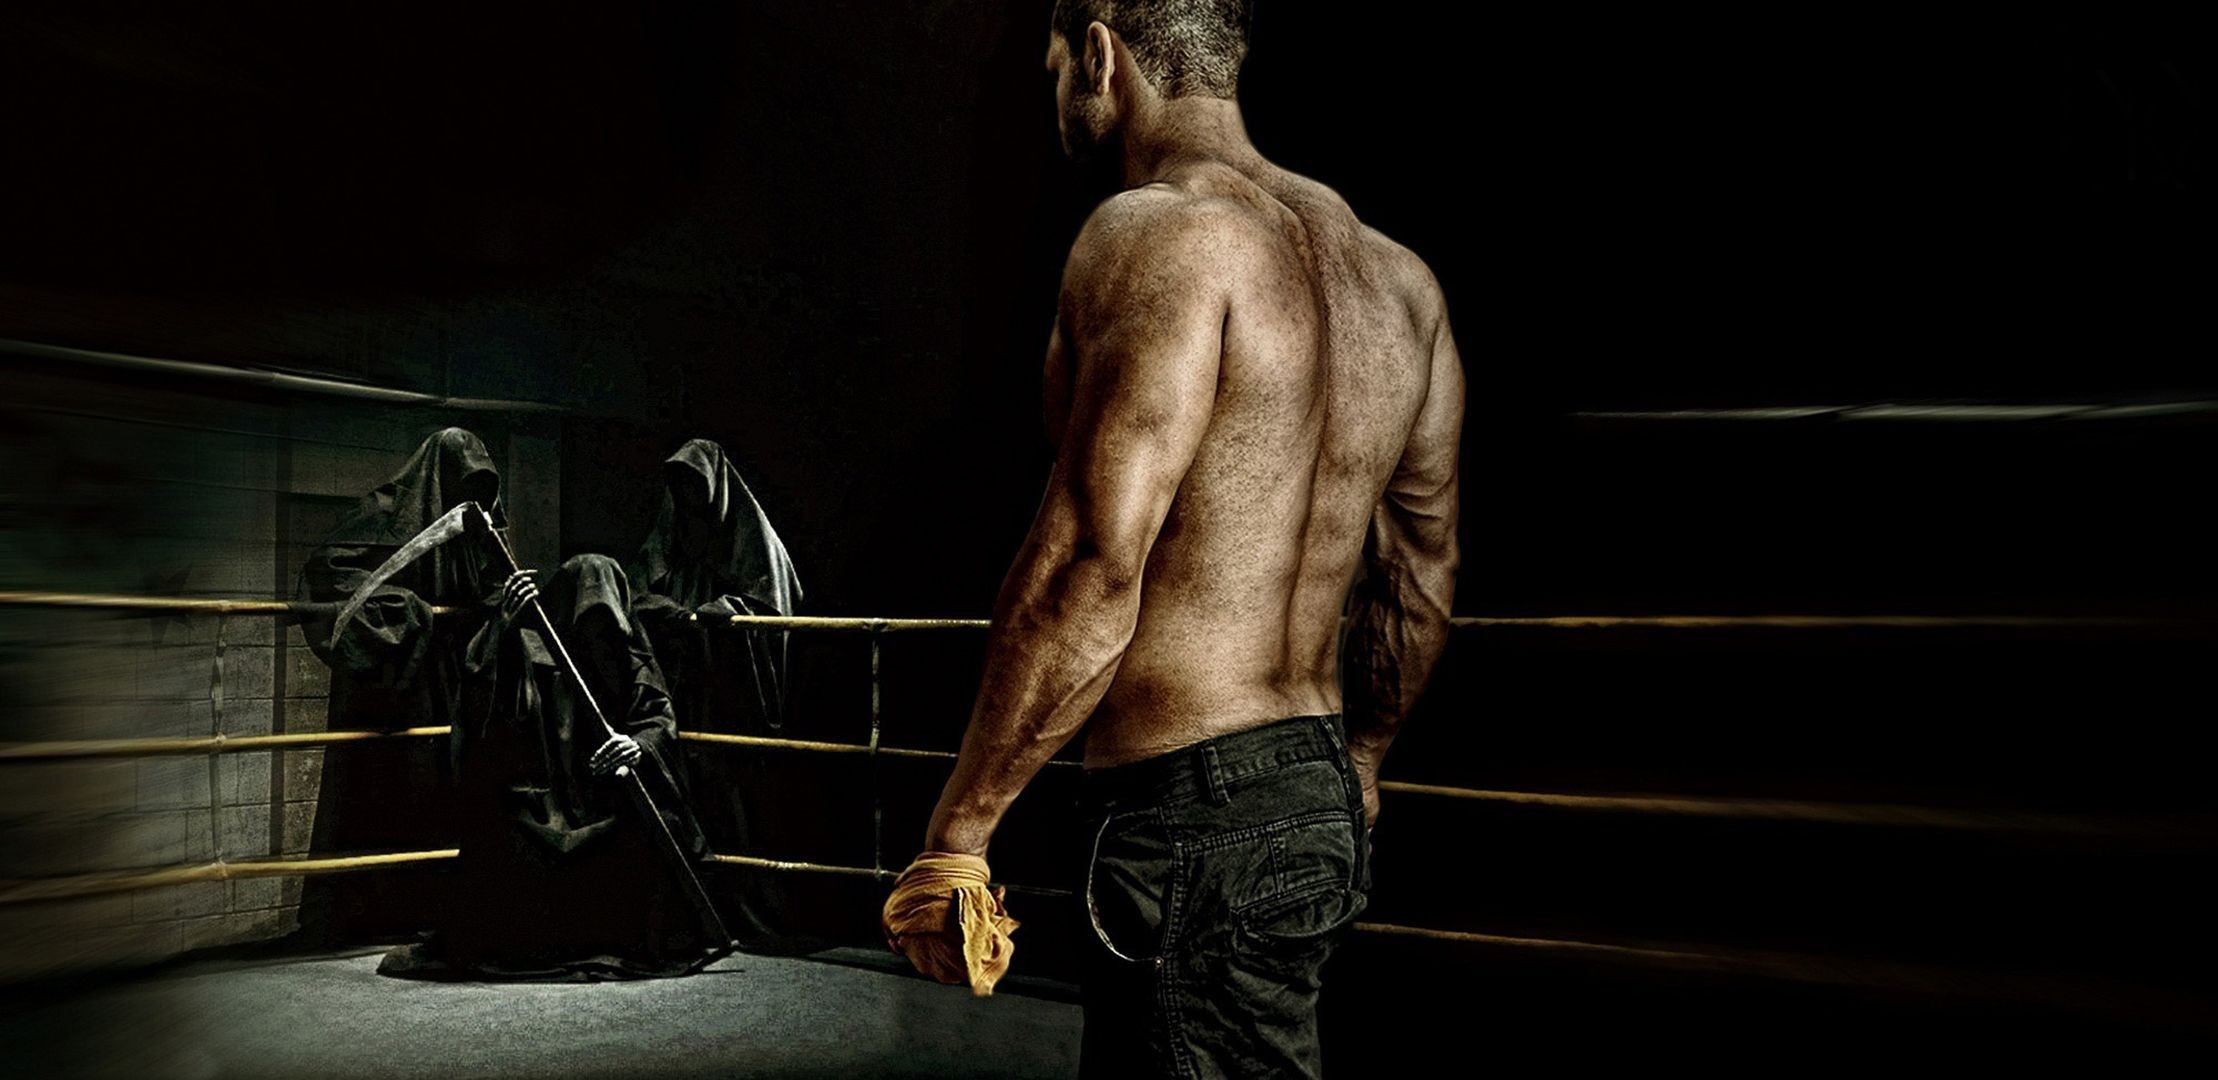 ring, war, death, man, soldier, boxing, background, wallpaper